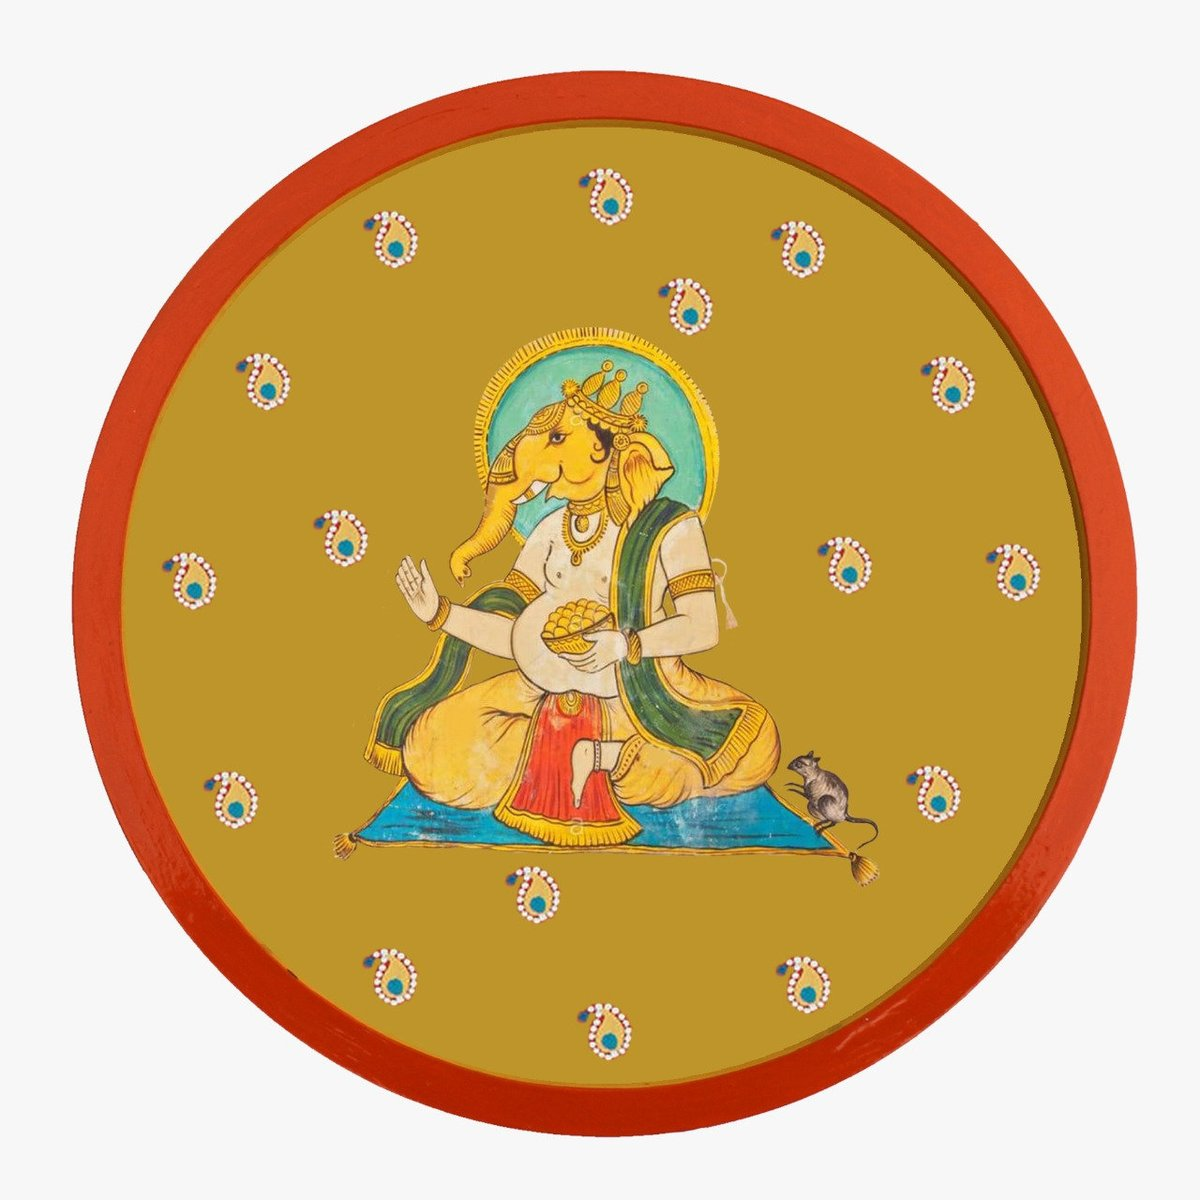 Lord Ganesha on wooden plate- Painting of Lord Ganesha- Indian Pichwai Art- Wall Decor- Wall Hanging- Art- Art Decor- Hindu Gods https://t.co/Ajgf8nwTme #yellow #blue #bedroom #artdeco #lordganesha #hindugods #wallplate #decorativeplate #woodenplate #etsyshop #etsy https://t.co/MQbTNPlhQS